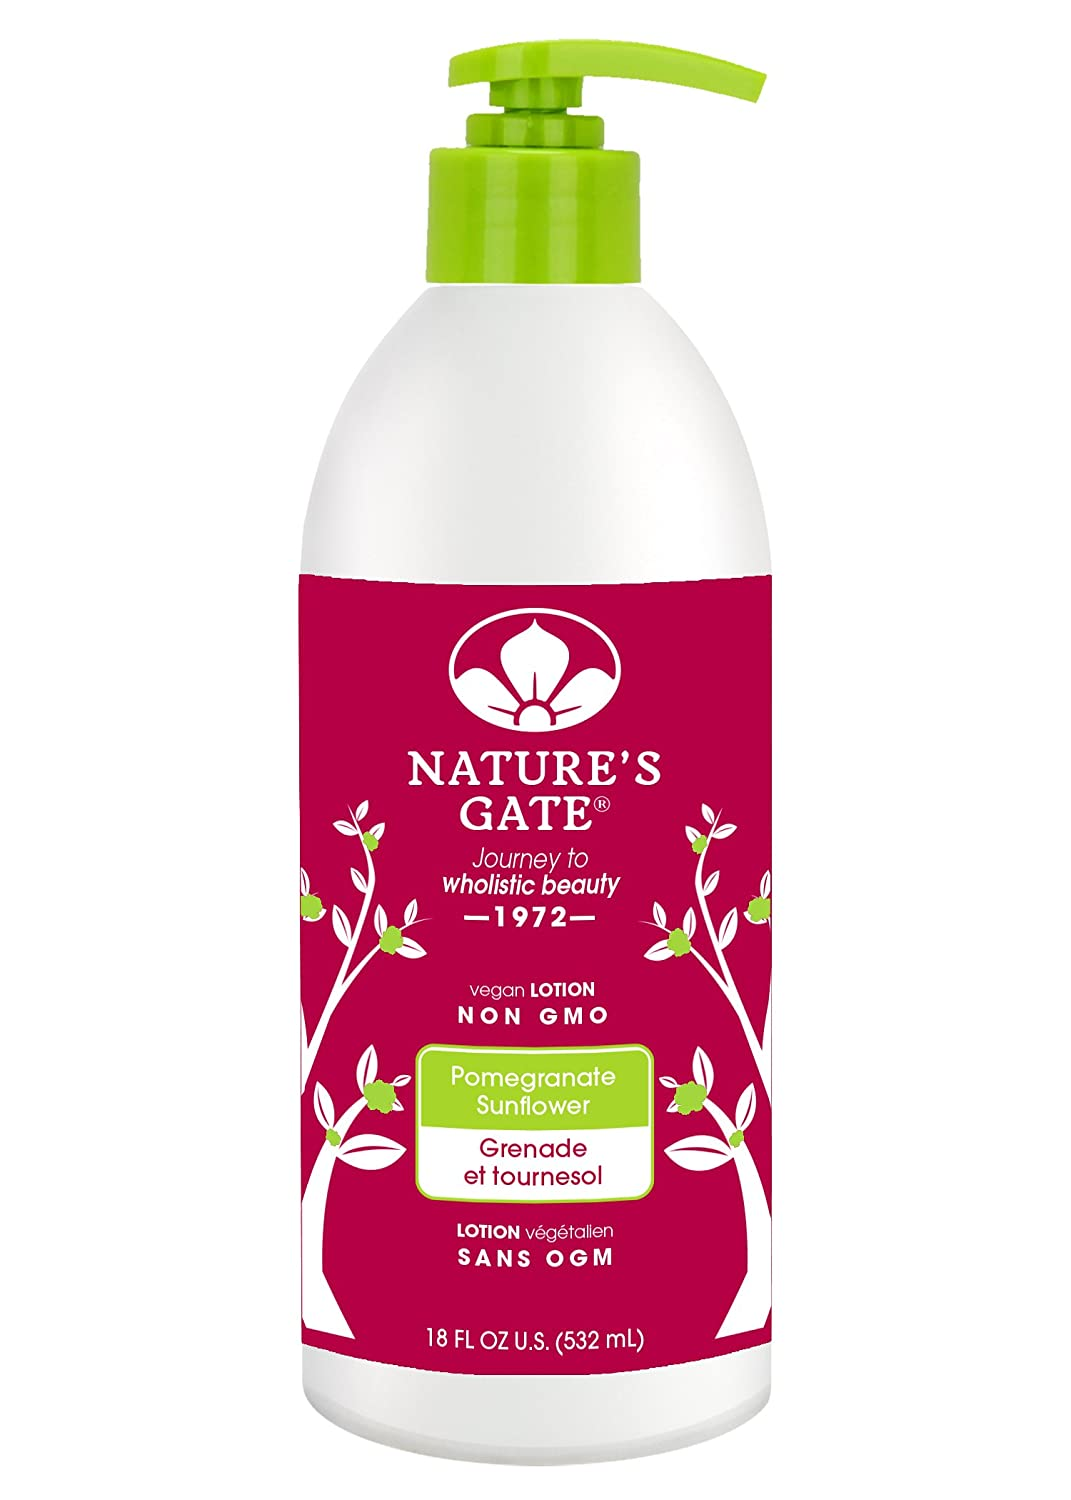 Nature's Gate Pomegranate Sunflower Defends and Nourishes Dry Skin Paraben Free, 18 Ounce